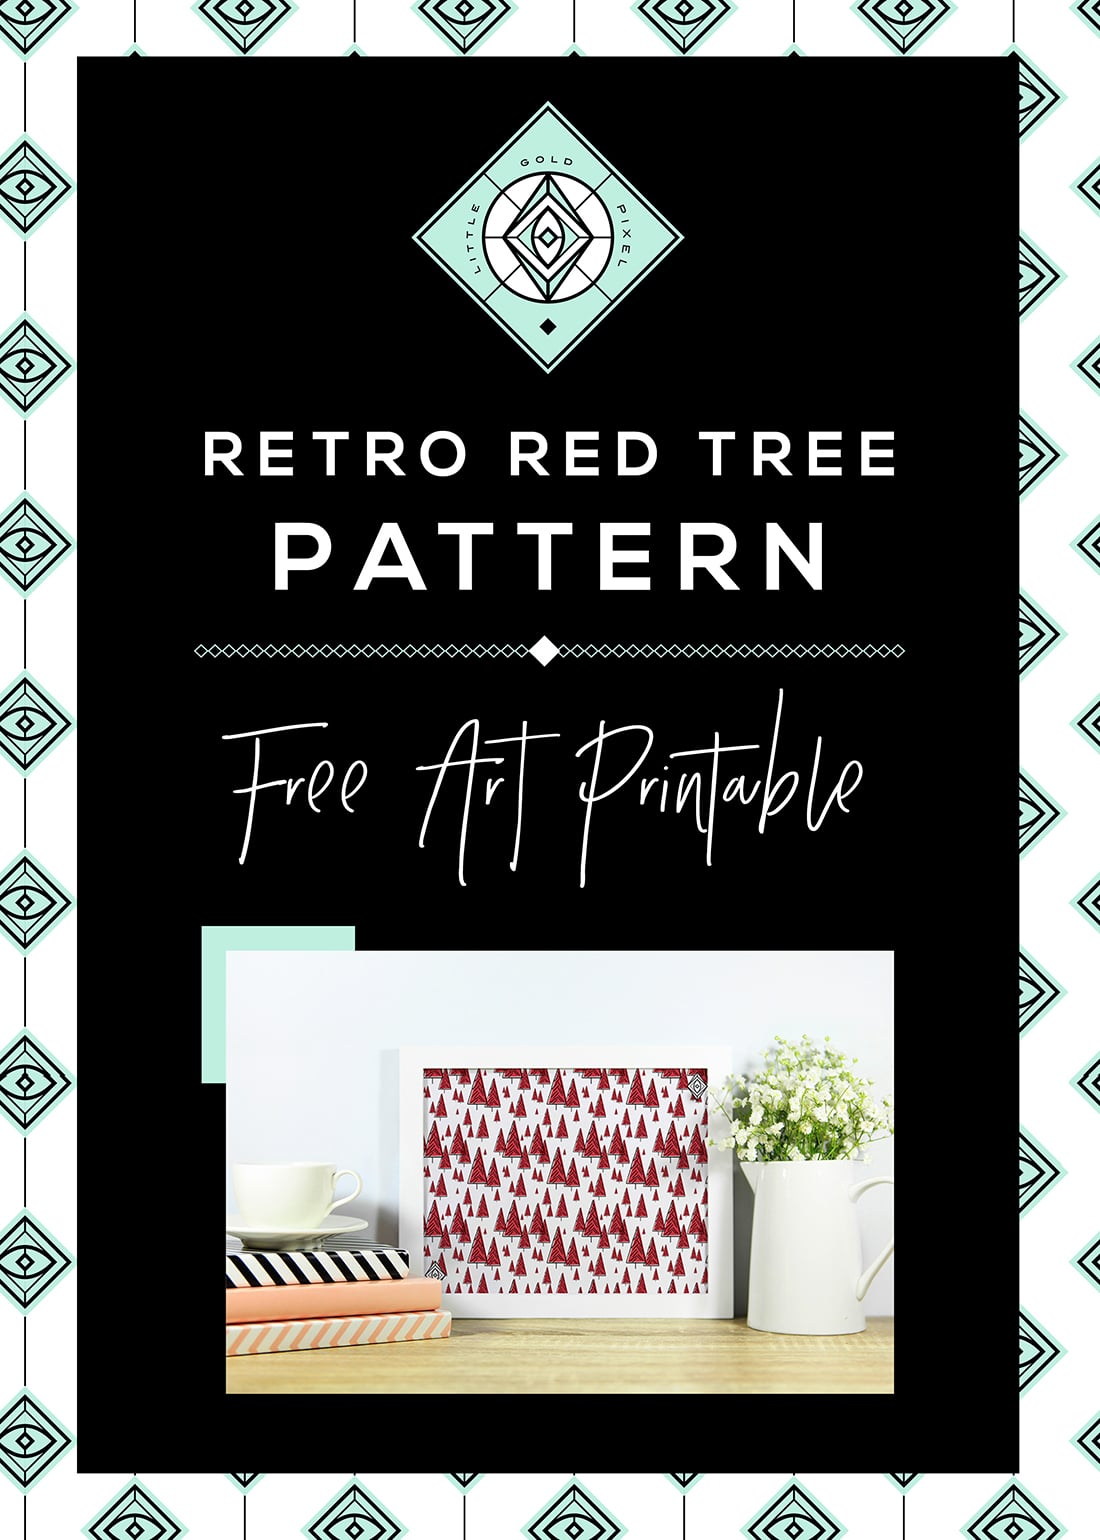 Retro Tree Pattern Free Art Printable • Little Gold Pixel